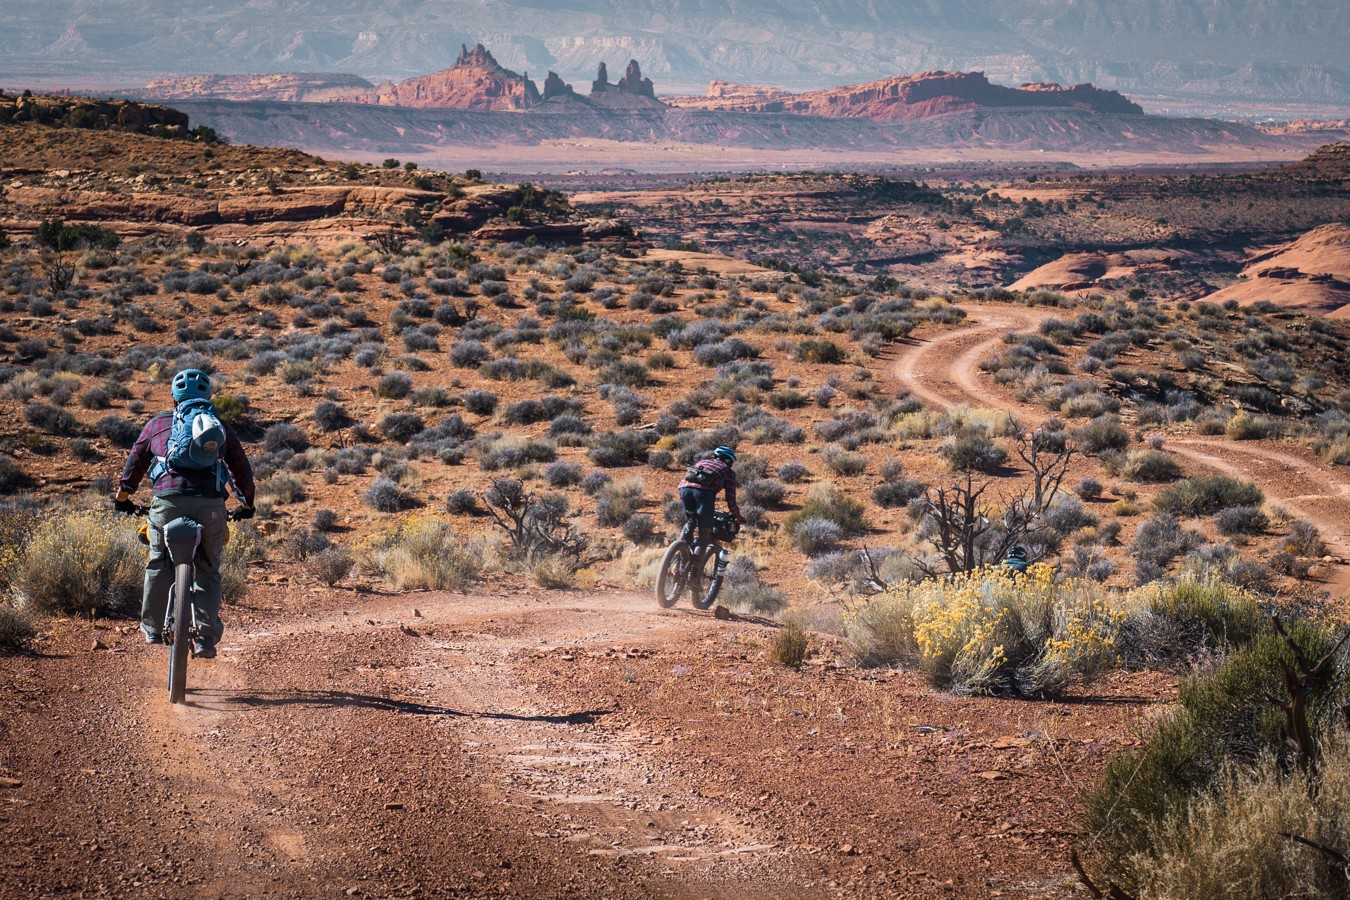 Bikepacking on the Navajo Lands with Jon Yazzie